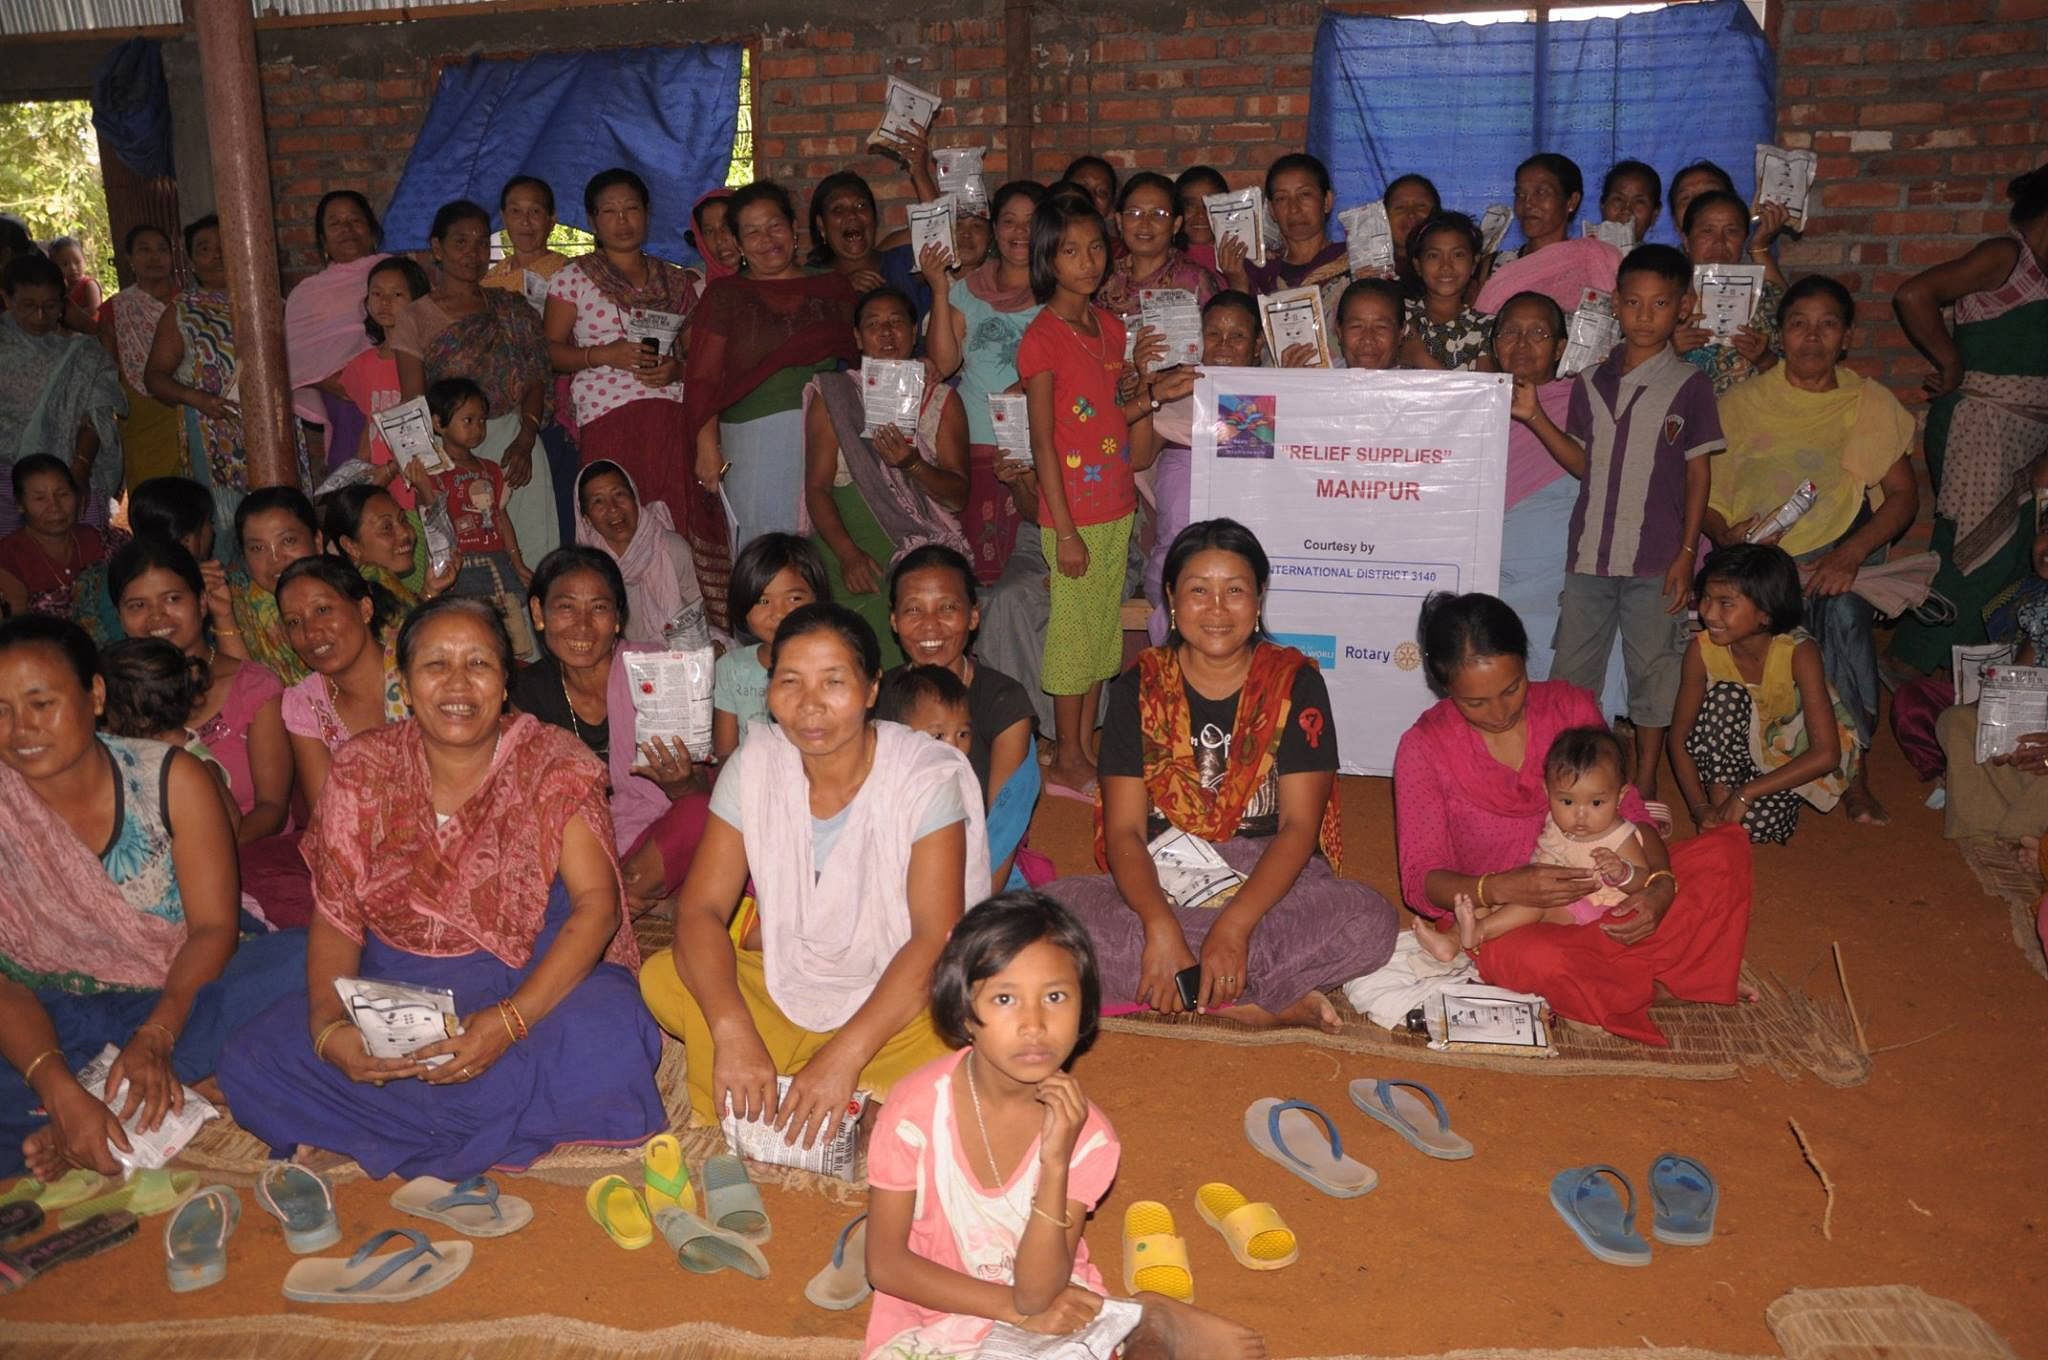 Many organizations have joined hands to distribute relief material in Manipur.